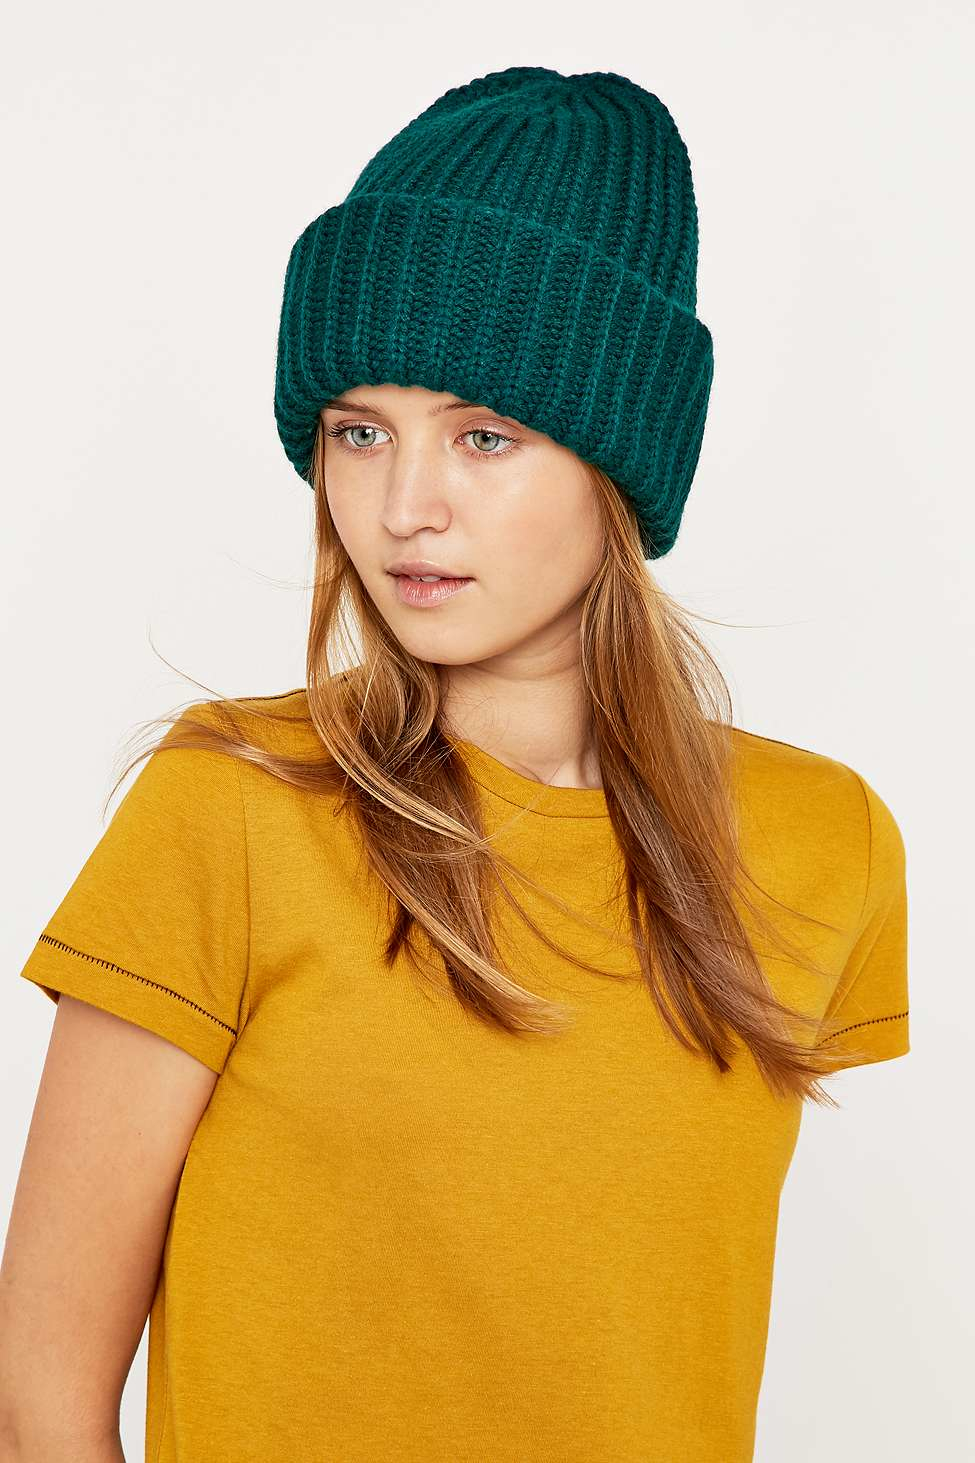 d2bb91513b0 Urban Outfitters Ribbed Stand-up Beanie in Green - Lyst